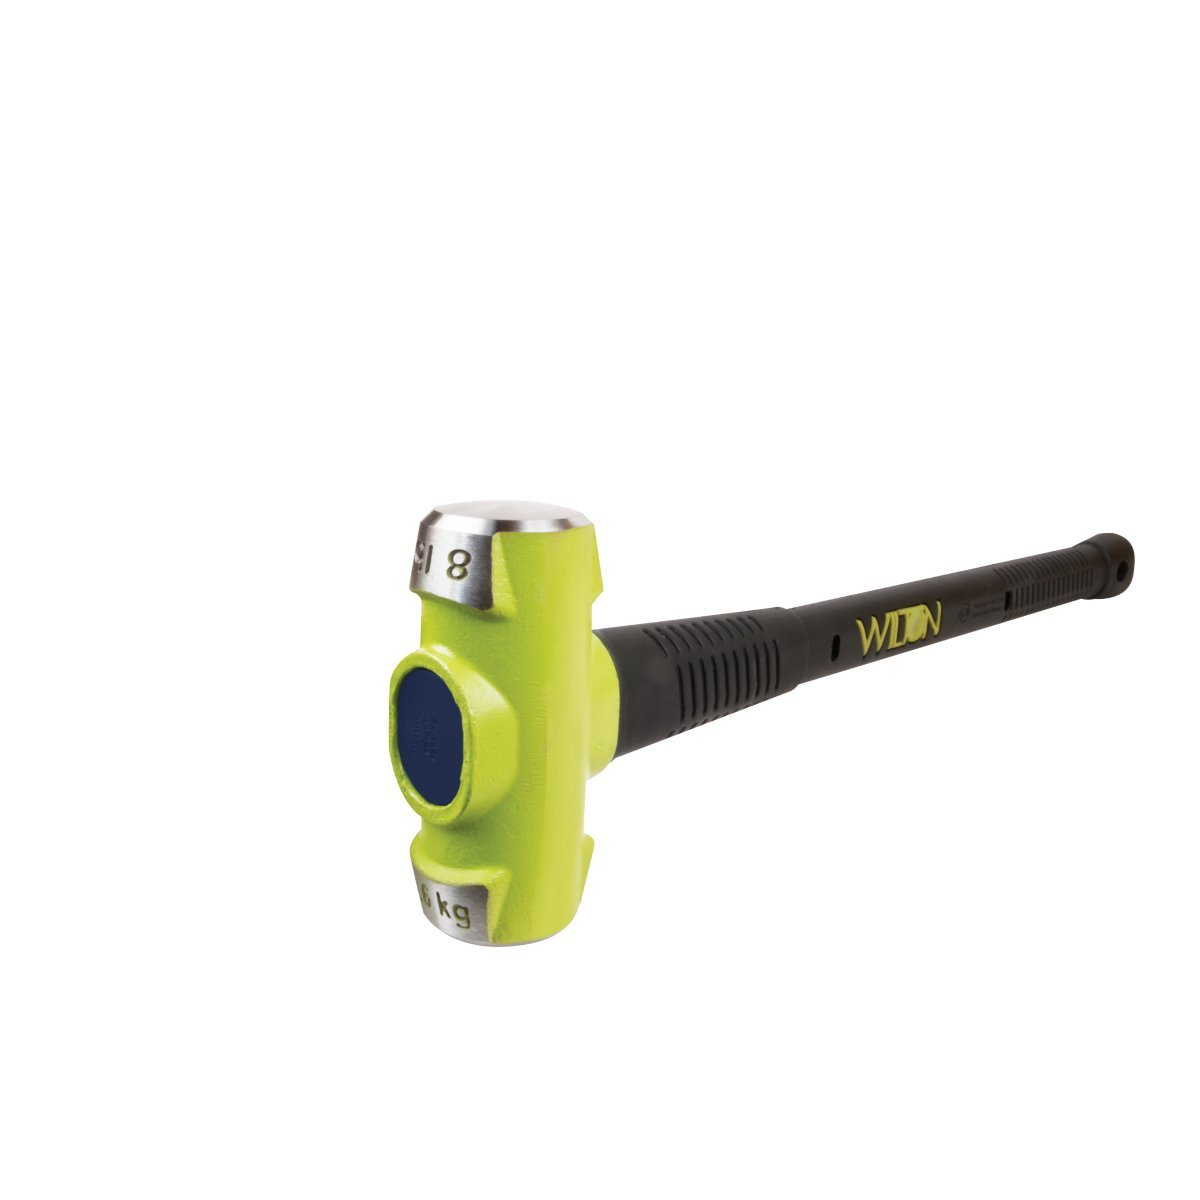 Wilton 40824 8 lb. BASH Soft Face Sledge Hammer with 24-in Unbreakable Handle by Wilton